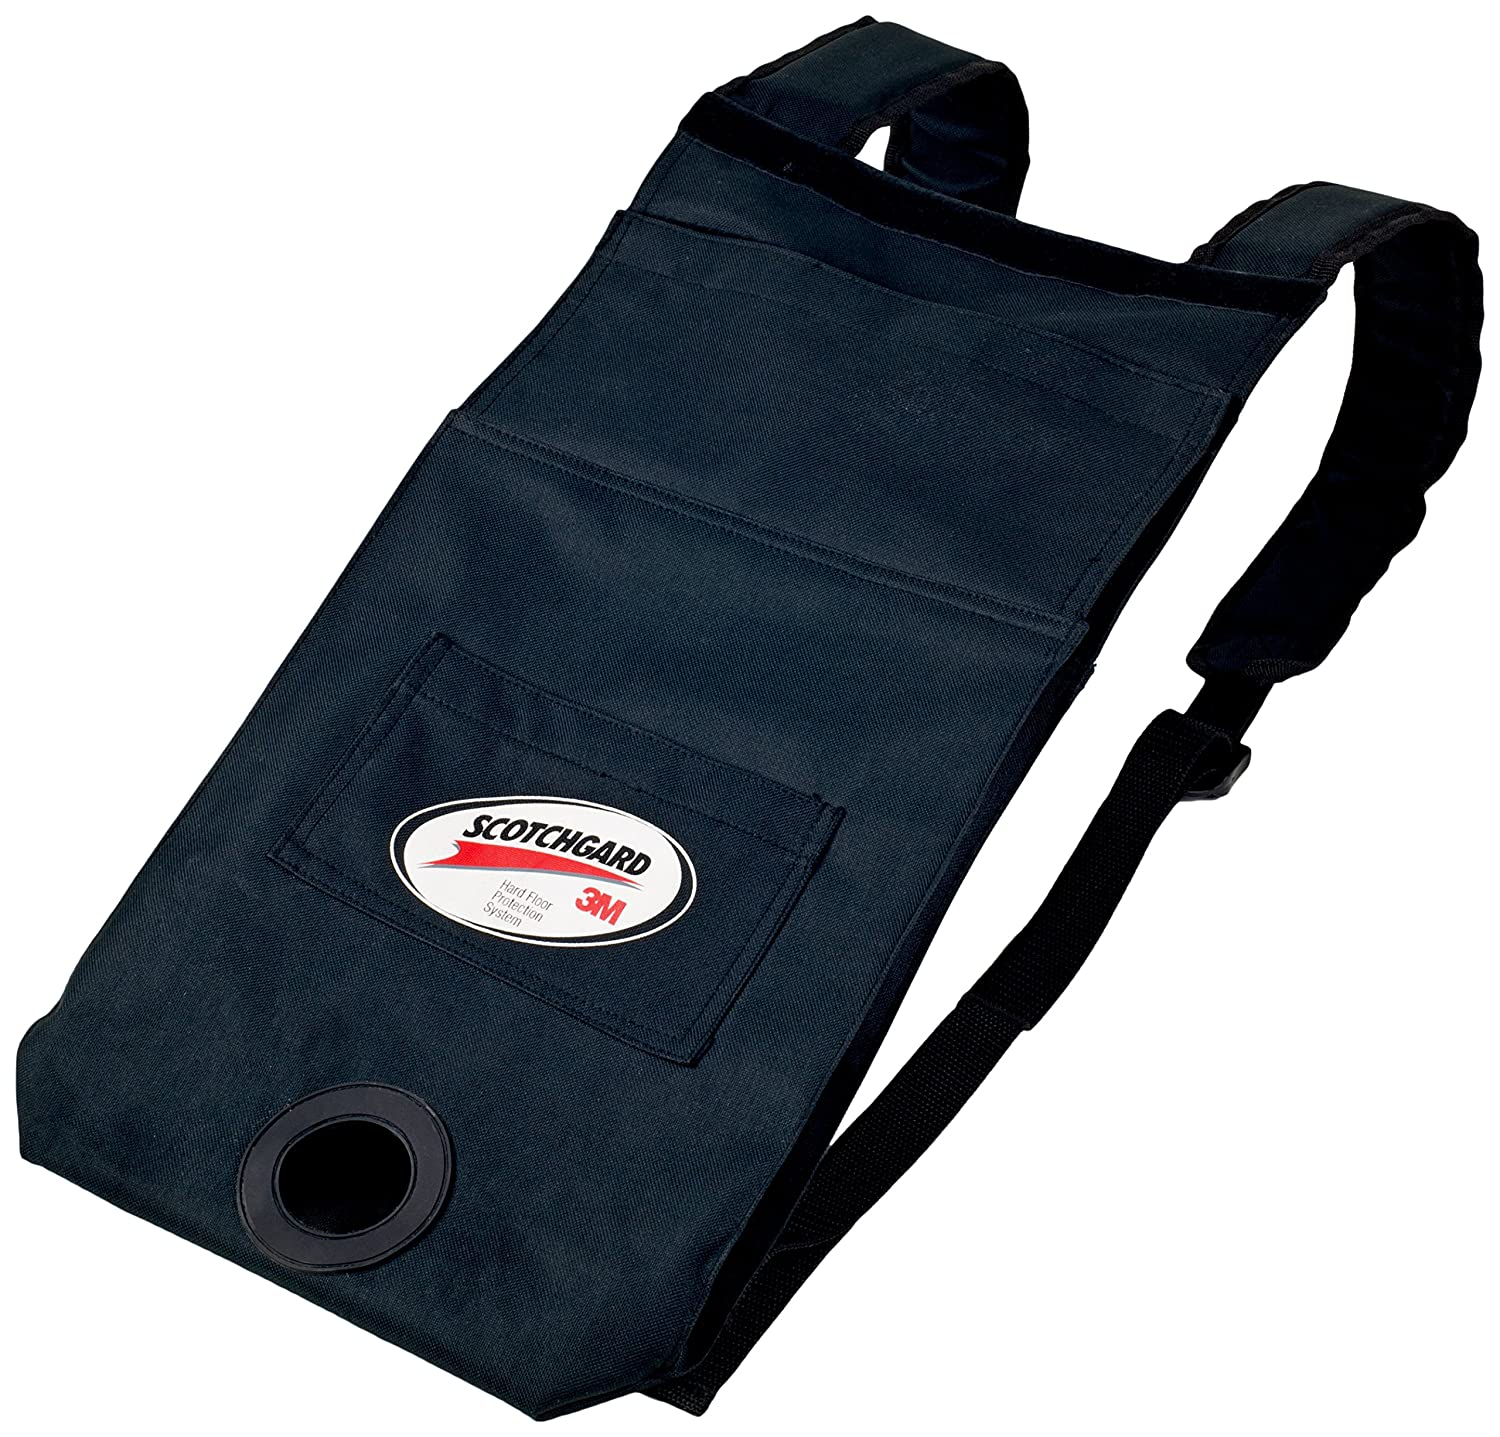 Holds up to 1 1//2 Gallons of Floor Finish 3M Easy Shine Canvas Backpack Protector or Cleaning Chemicals